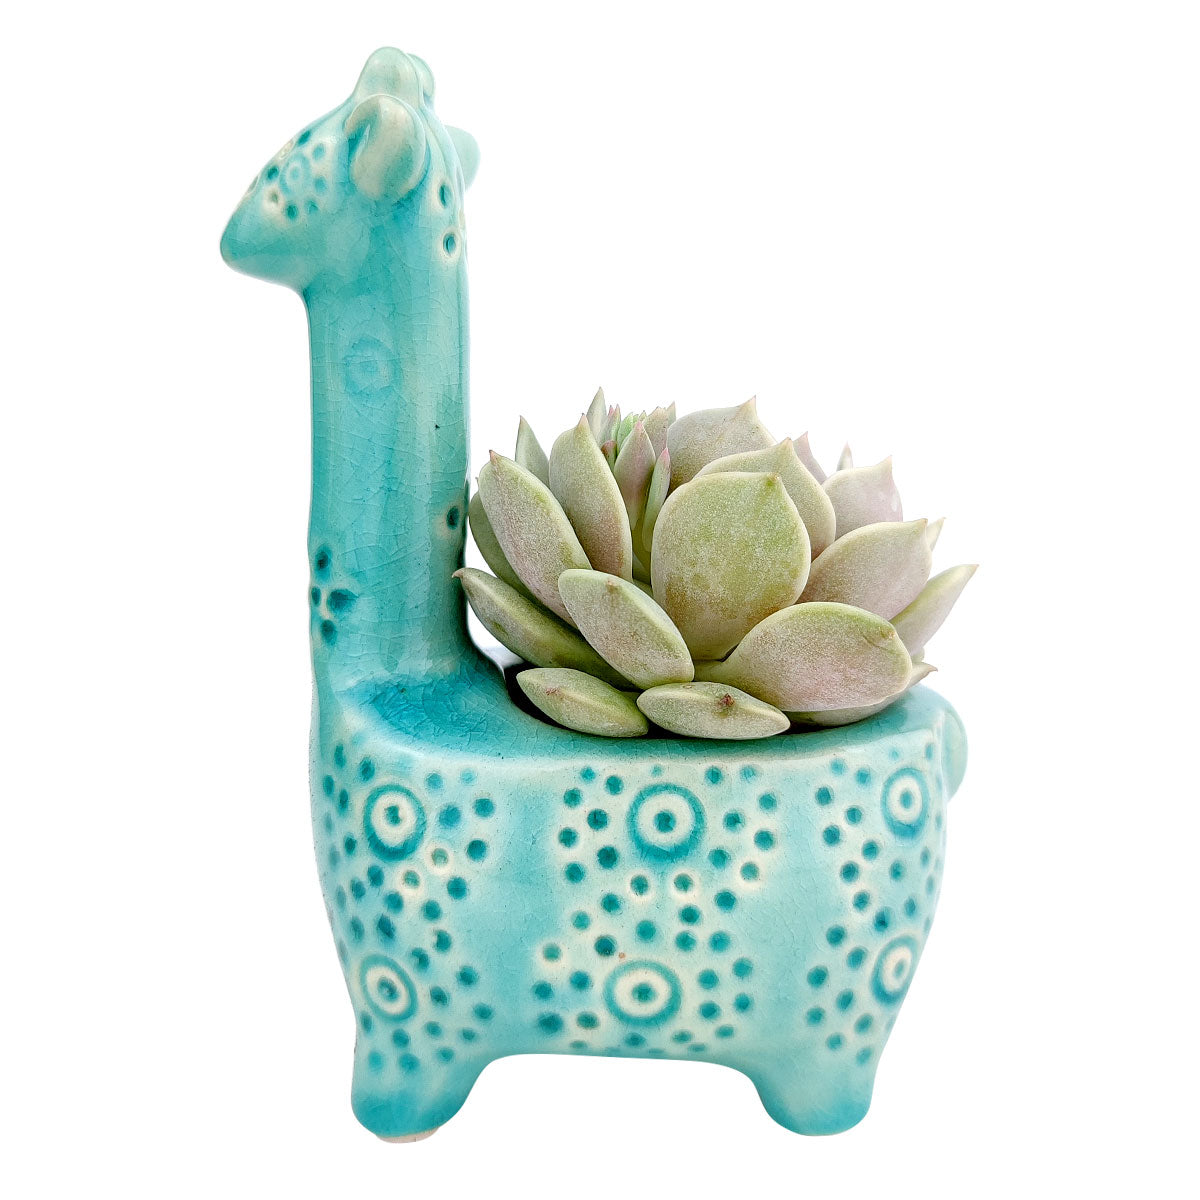 Blue Giraffe Ceramic Pot for sale, Ceramic mini pot for succulents and flowers, Ceramic Giraffe Flower Pot, Cute succulent planter, ideal gifts for mom, Giraffe Planters for sale